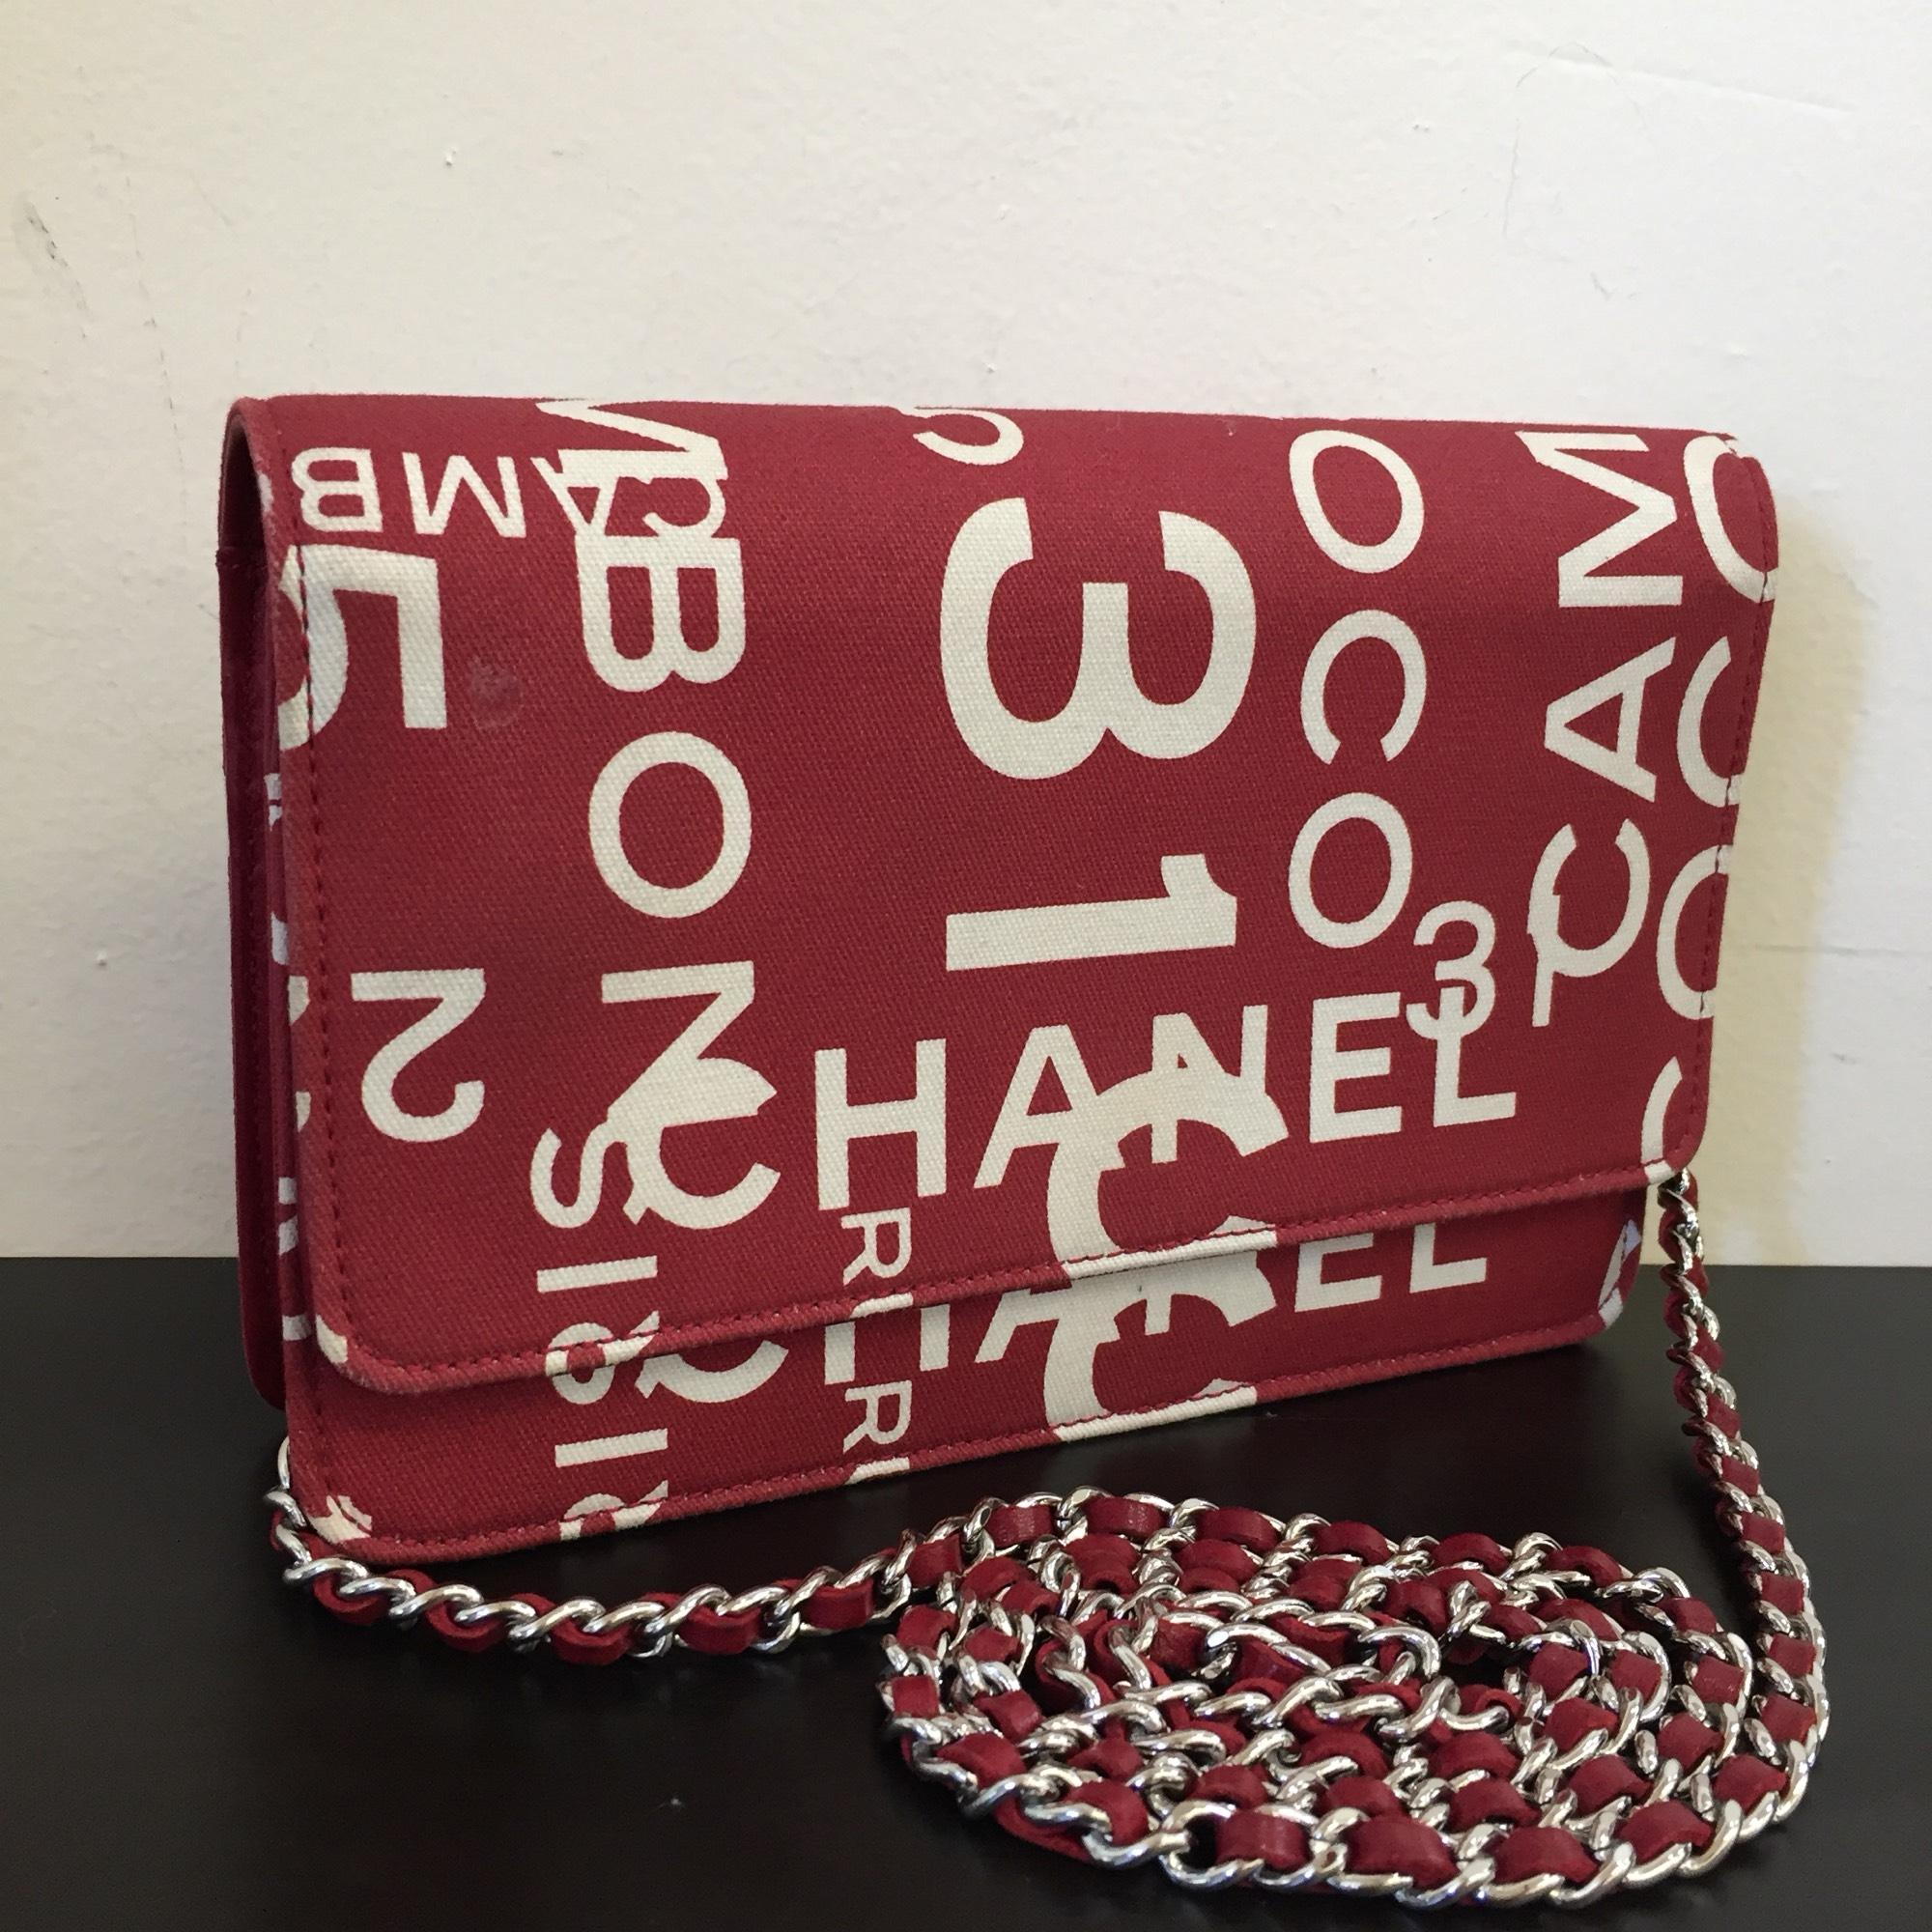 chanel bags red. chanel cross body bag bags red